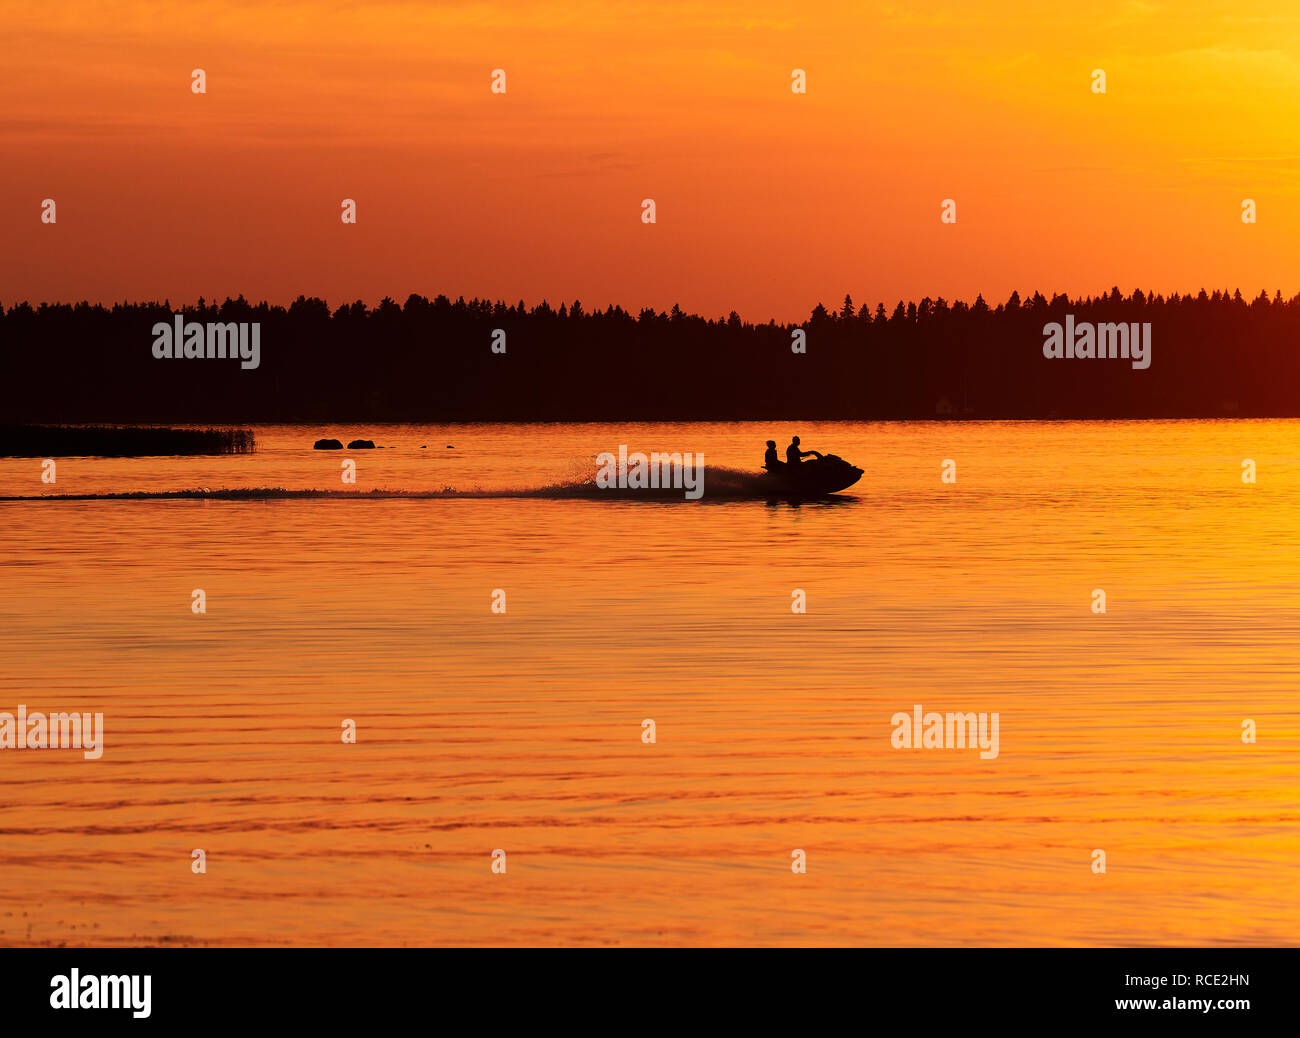 A jet-ski driving in calm sea water in Vaasa, Finland.  Sunset sky and colorful waves in the water.  activity, hobby and leisure time consept. - Stock Image